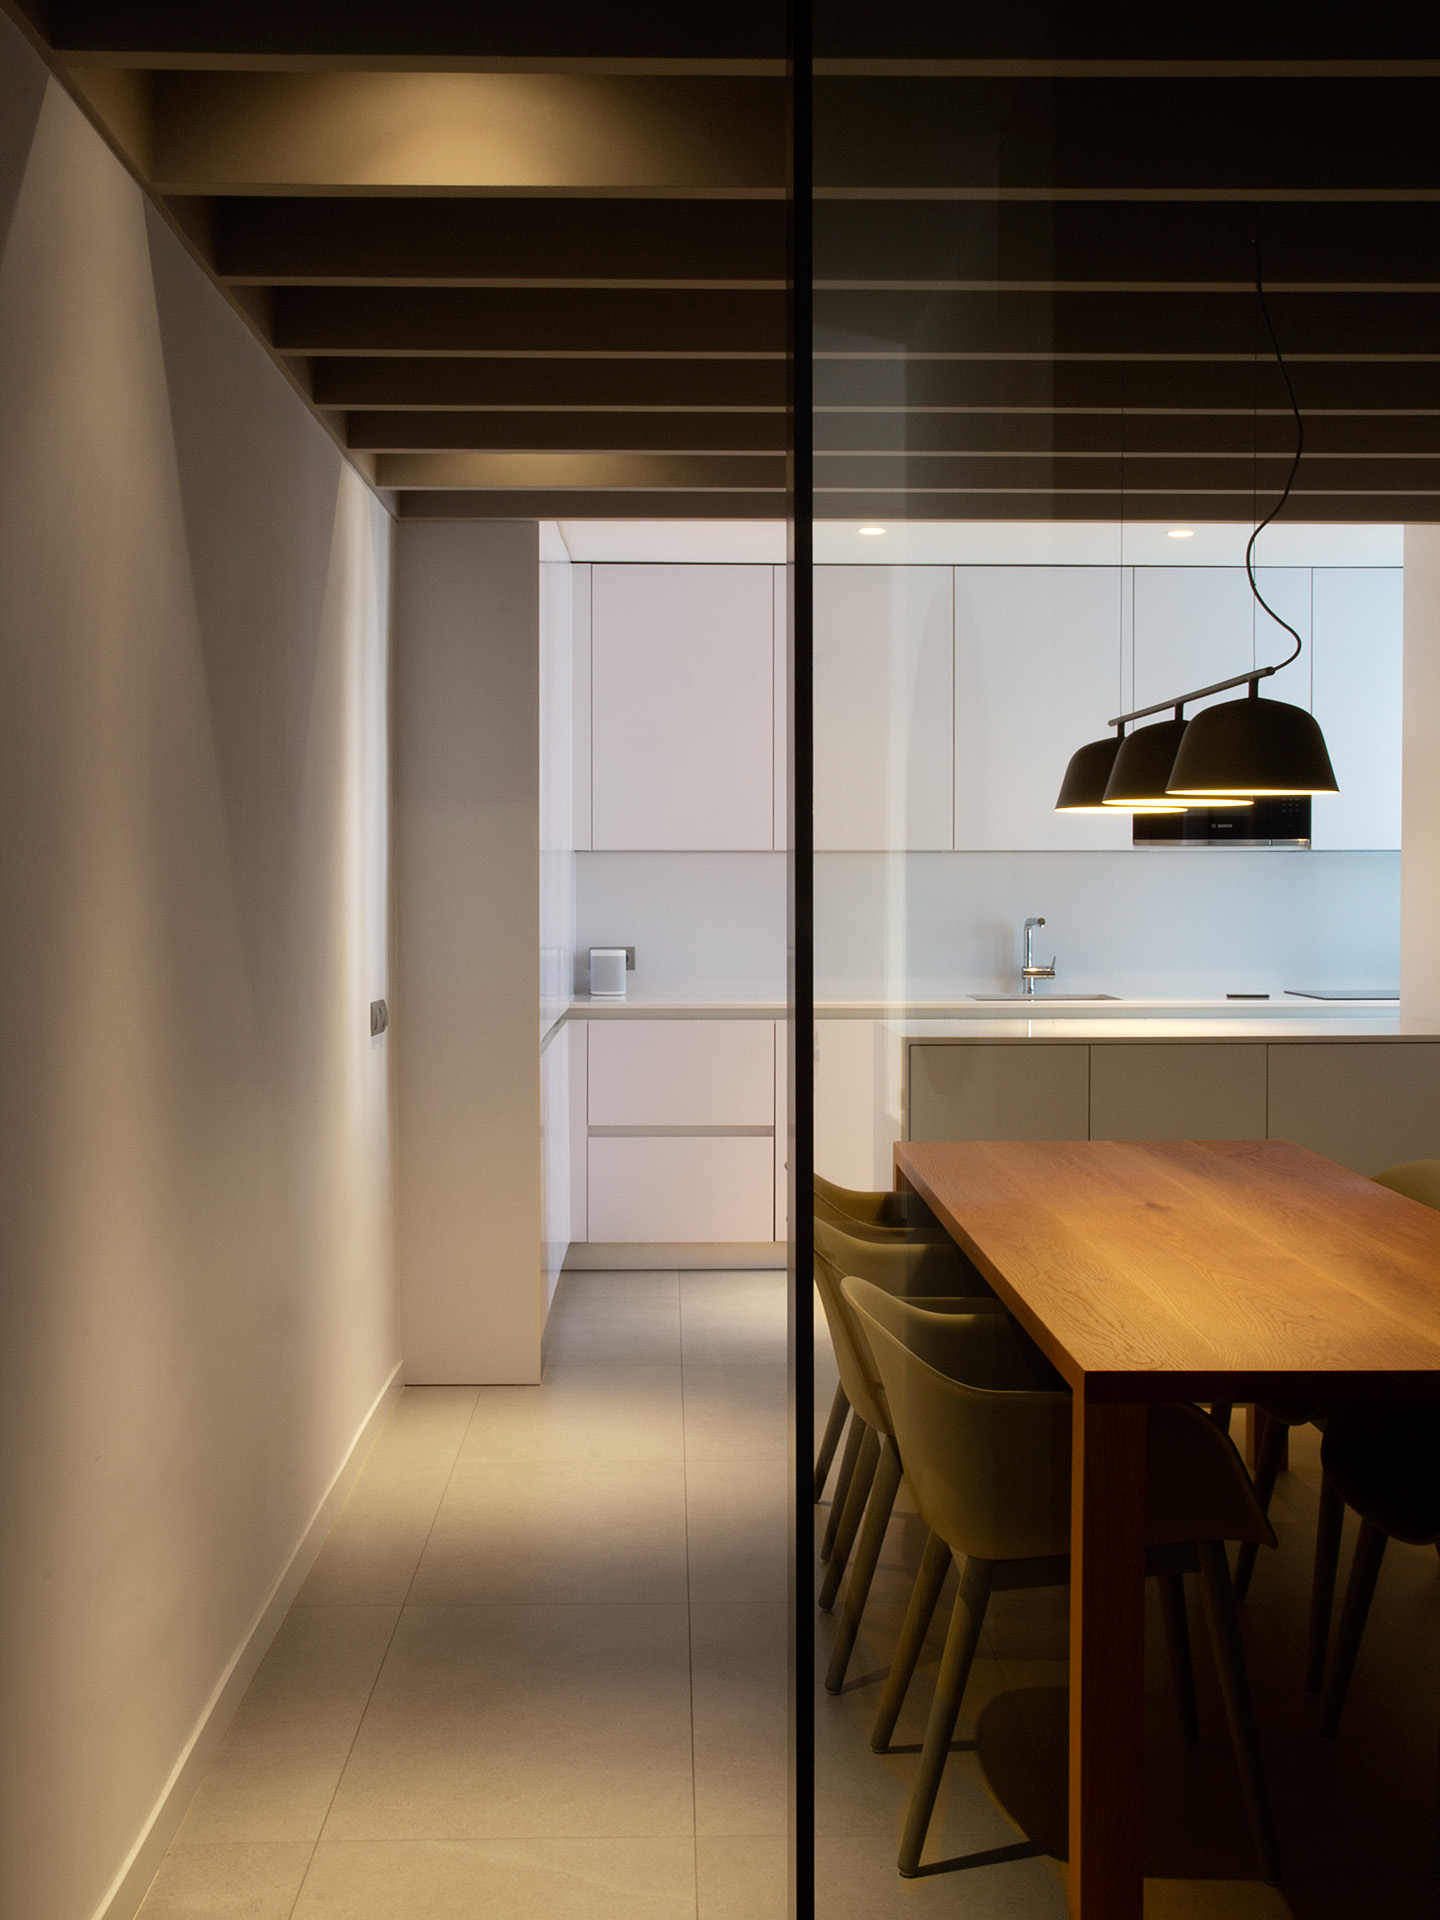 Apartamento JOAN 2019 - Madrid, Spain